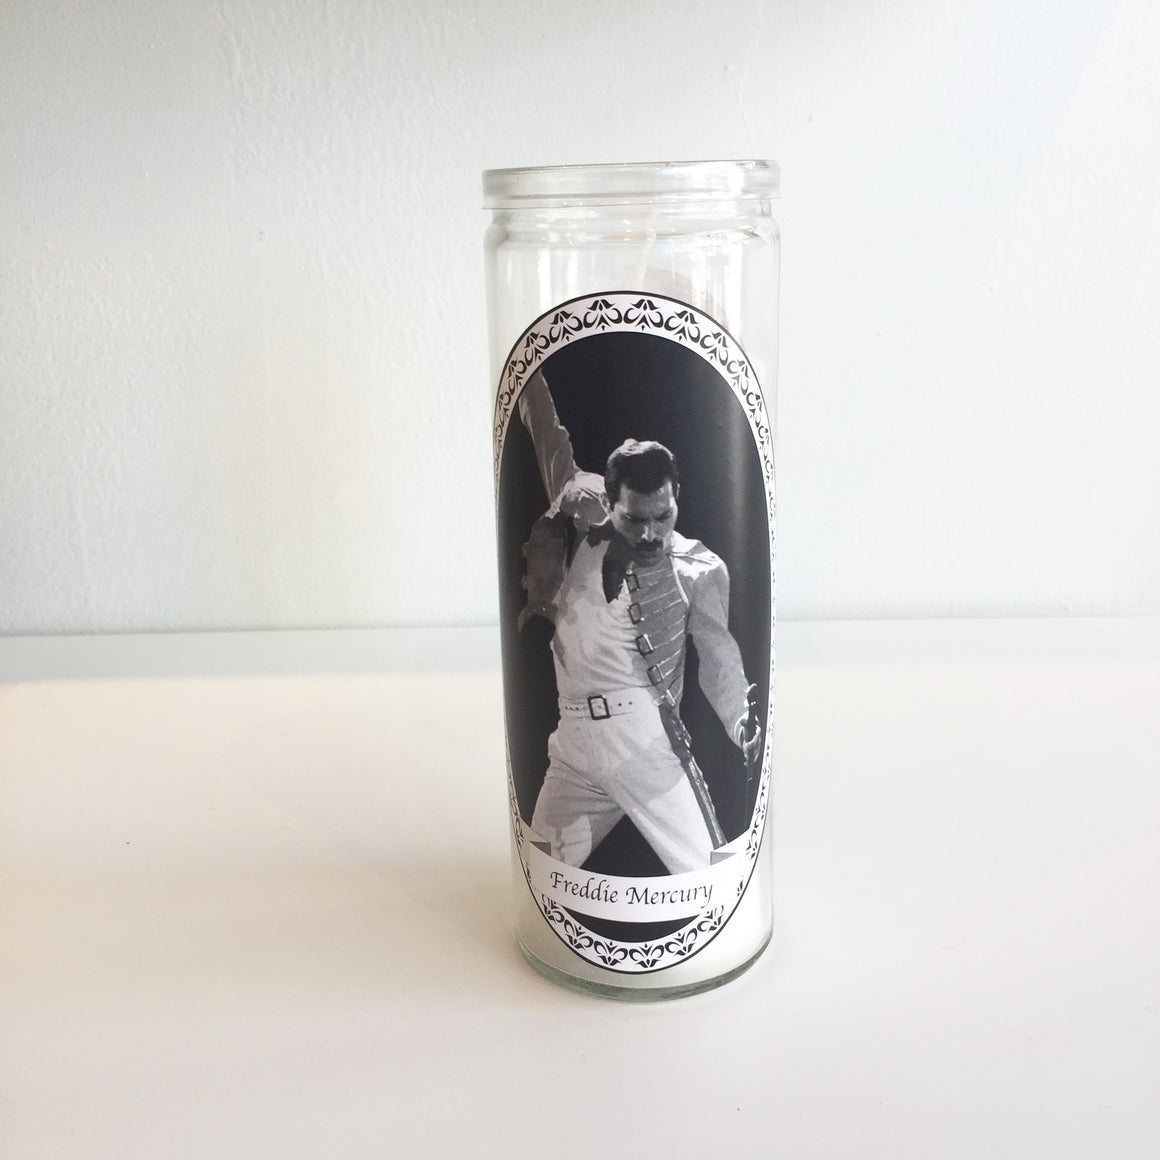 Freddie Mercury Votive Candle